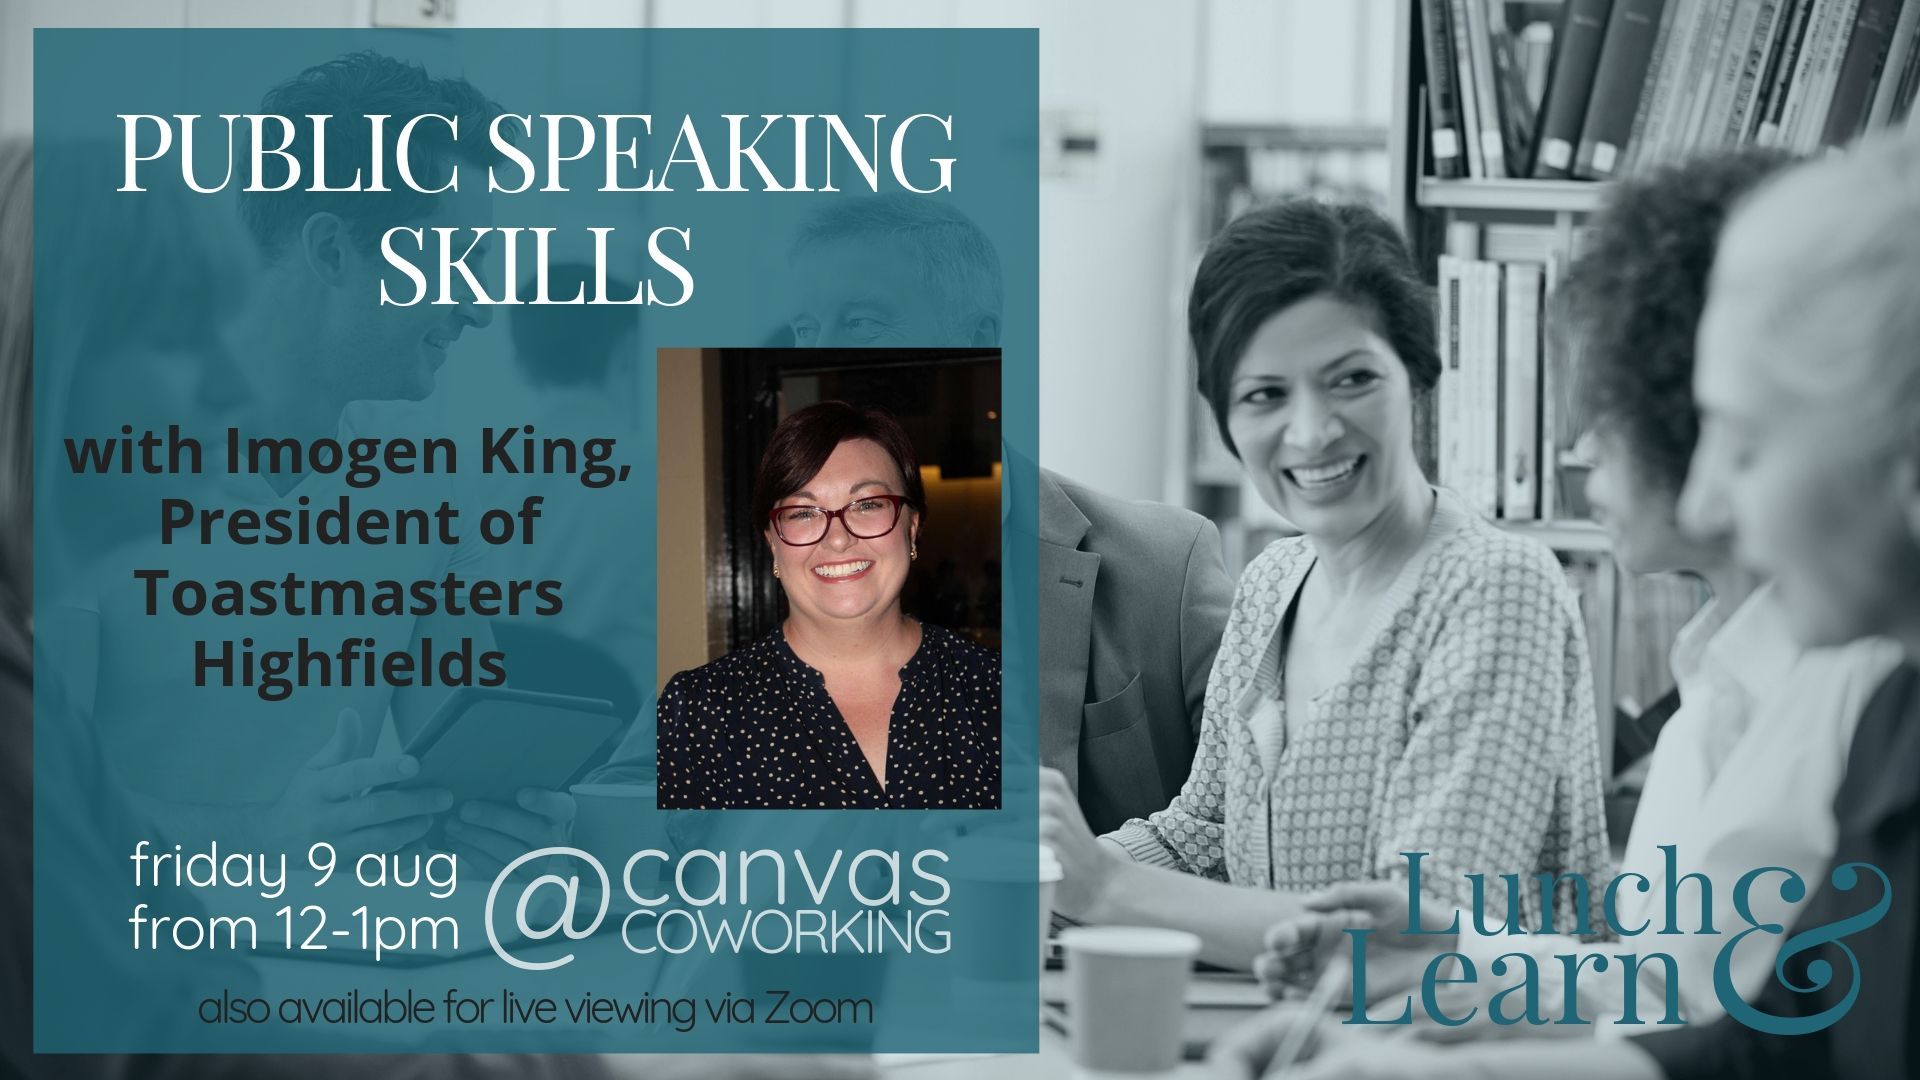 Public Speaking Skills with Imogen King from Toastmasters Highfields, Lunch & Learn at Canvas Coworking, Toowoomba